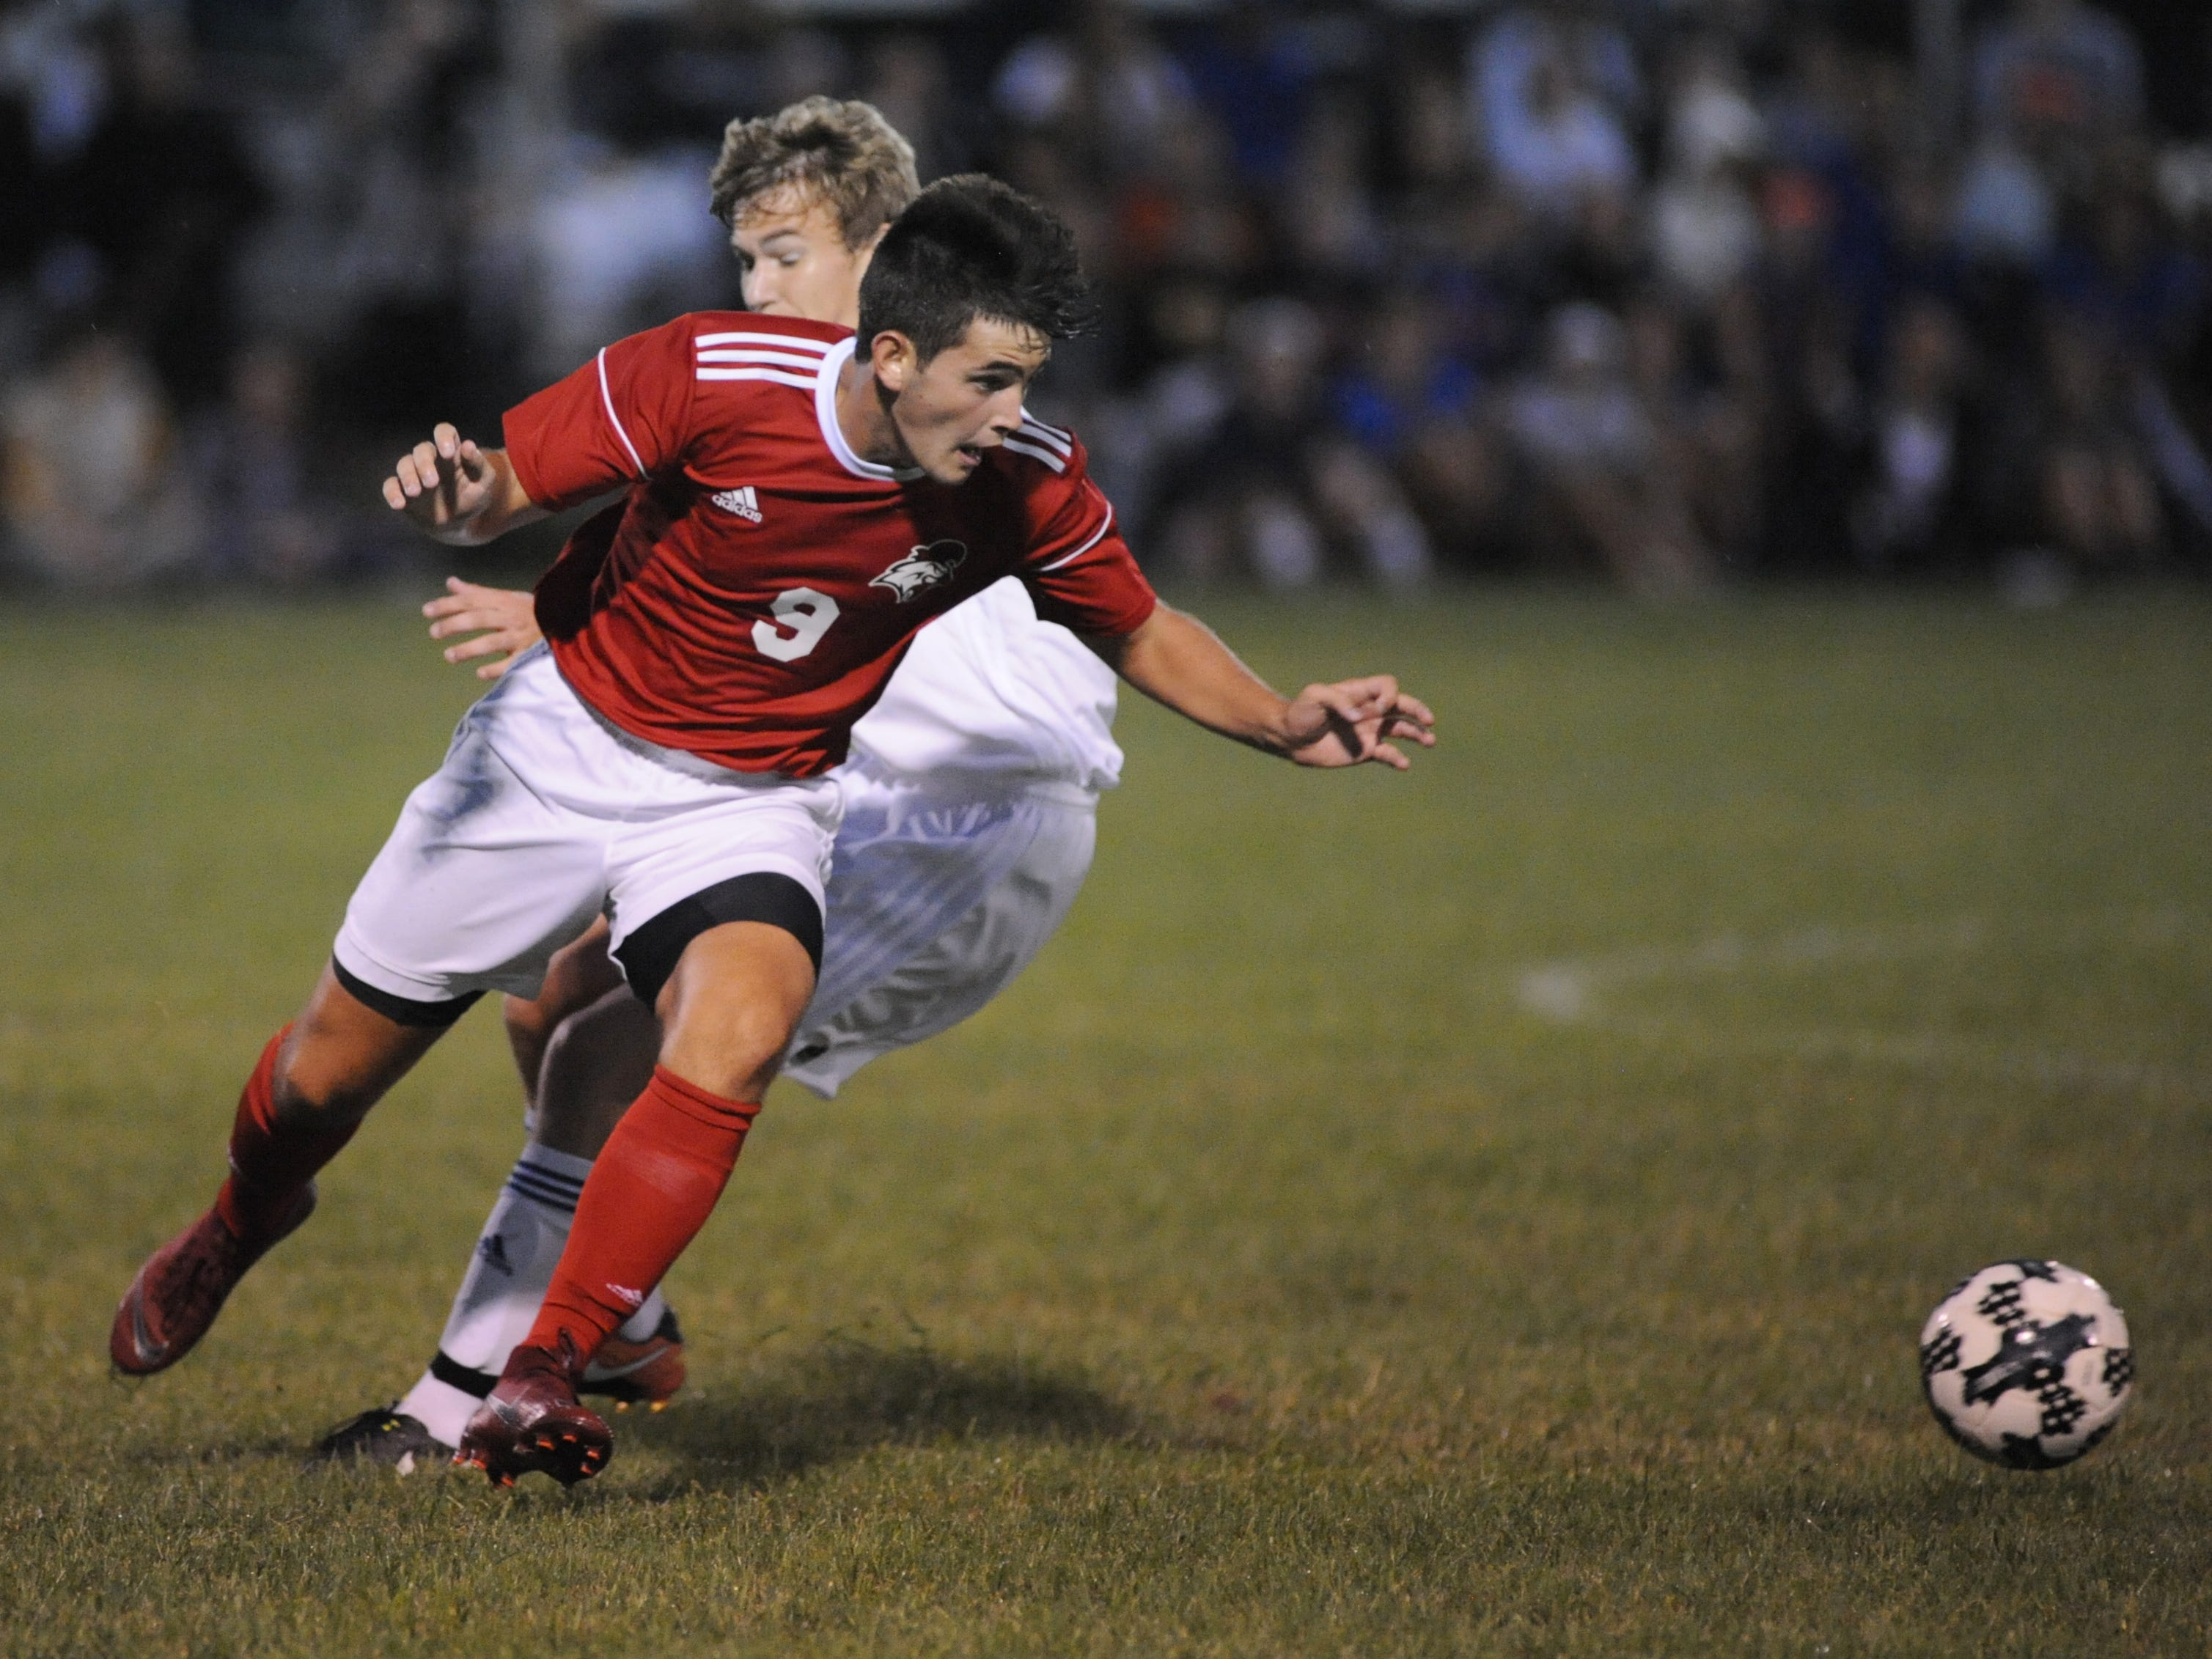 Vineland's Denis Maguire moves the ball during a boys soccer game against Millville at Romano Sports Complex in Vineland, Monday, Sept. 17, 2018.